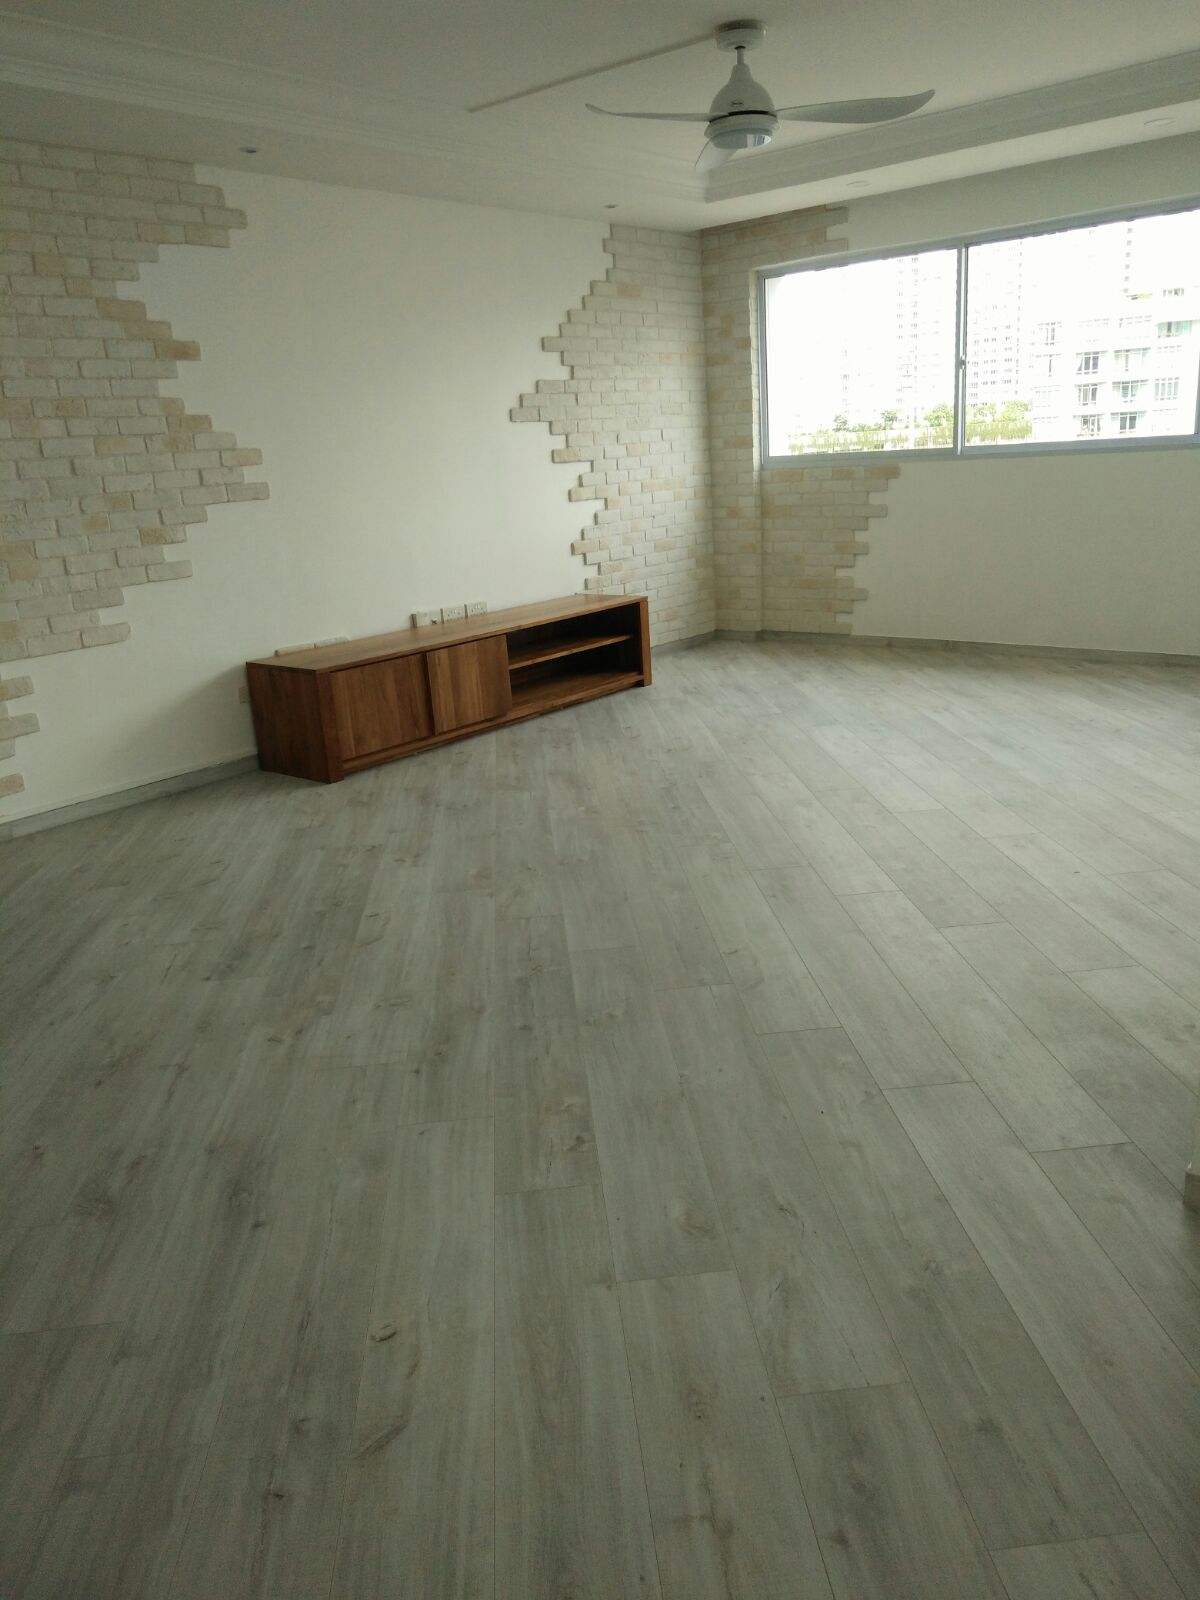 What Is The Best Direction To Install The Flooring Floor Xpert - How hard is it to lay laminate flooring